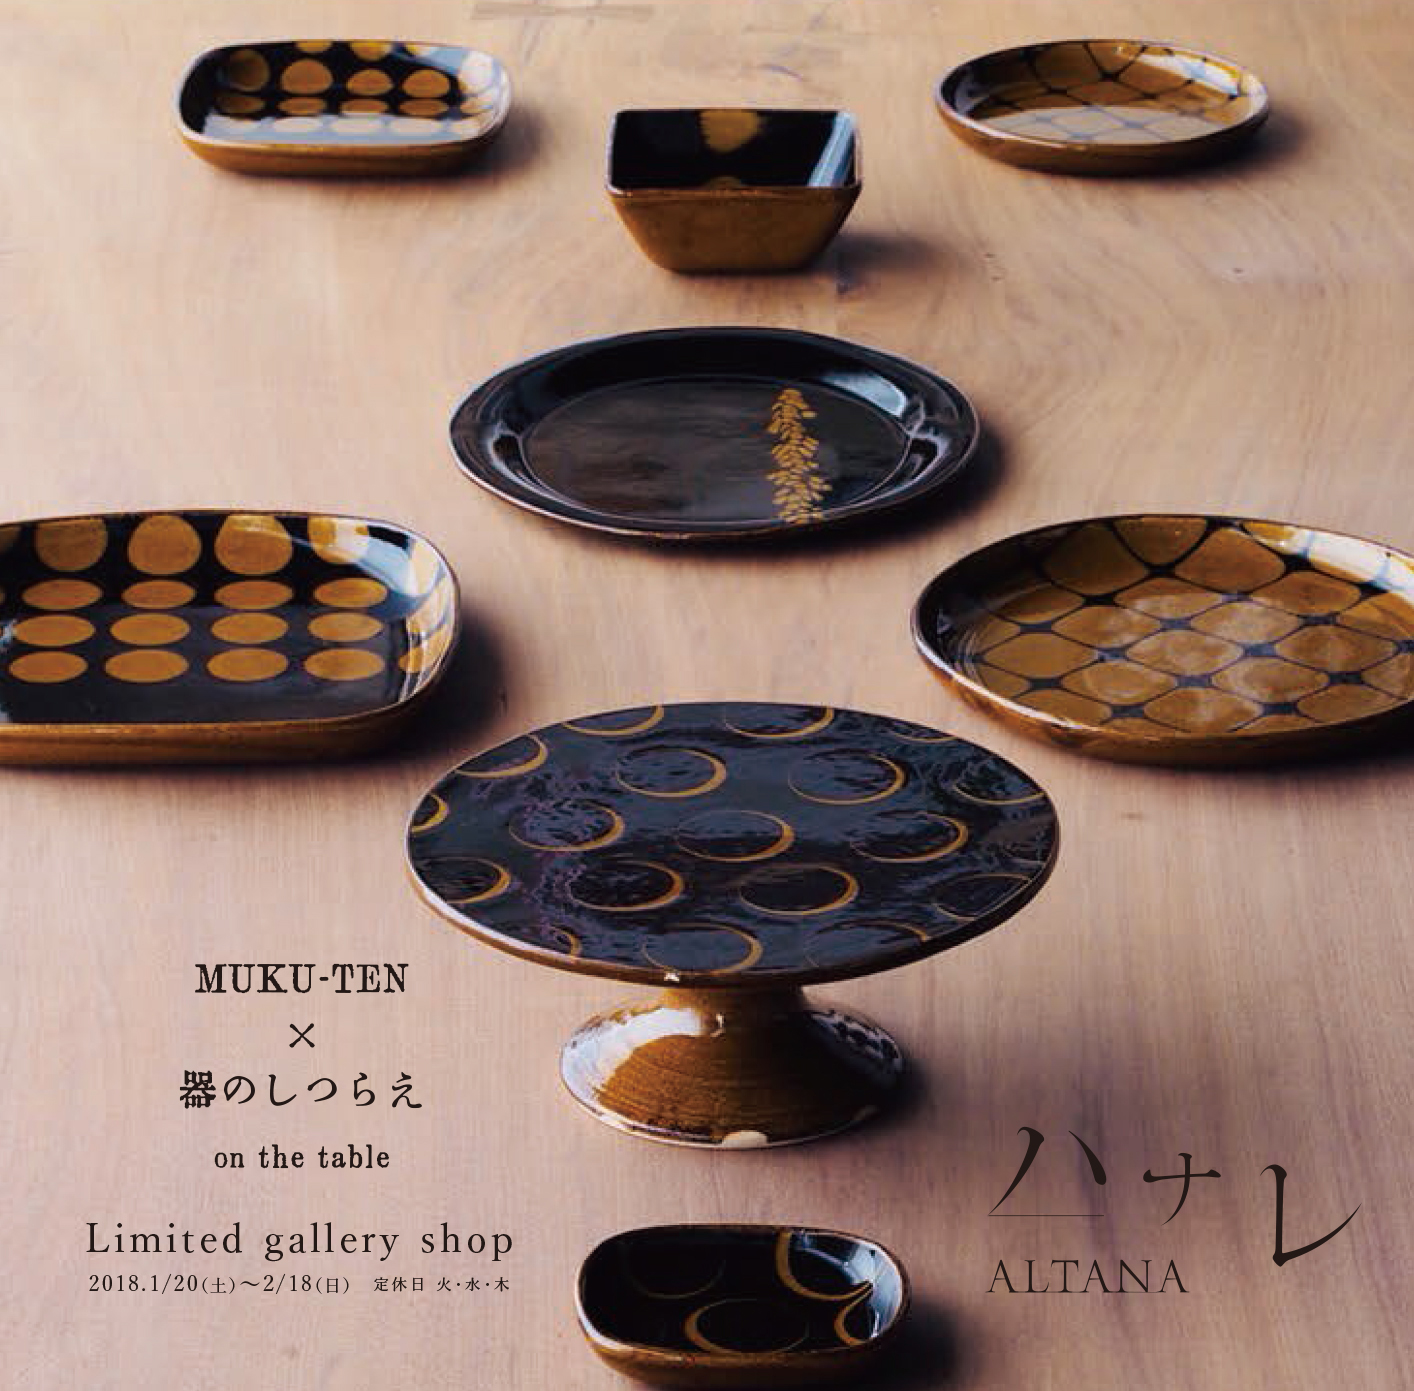 (終了)Limited gallery shop 2018.1/2 - 2/18